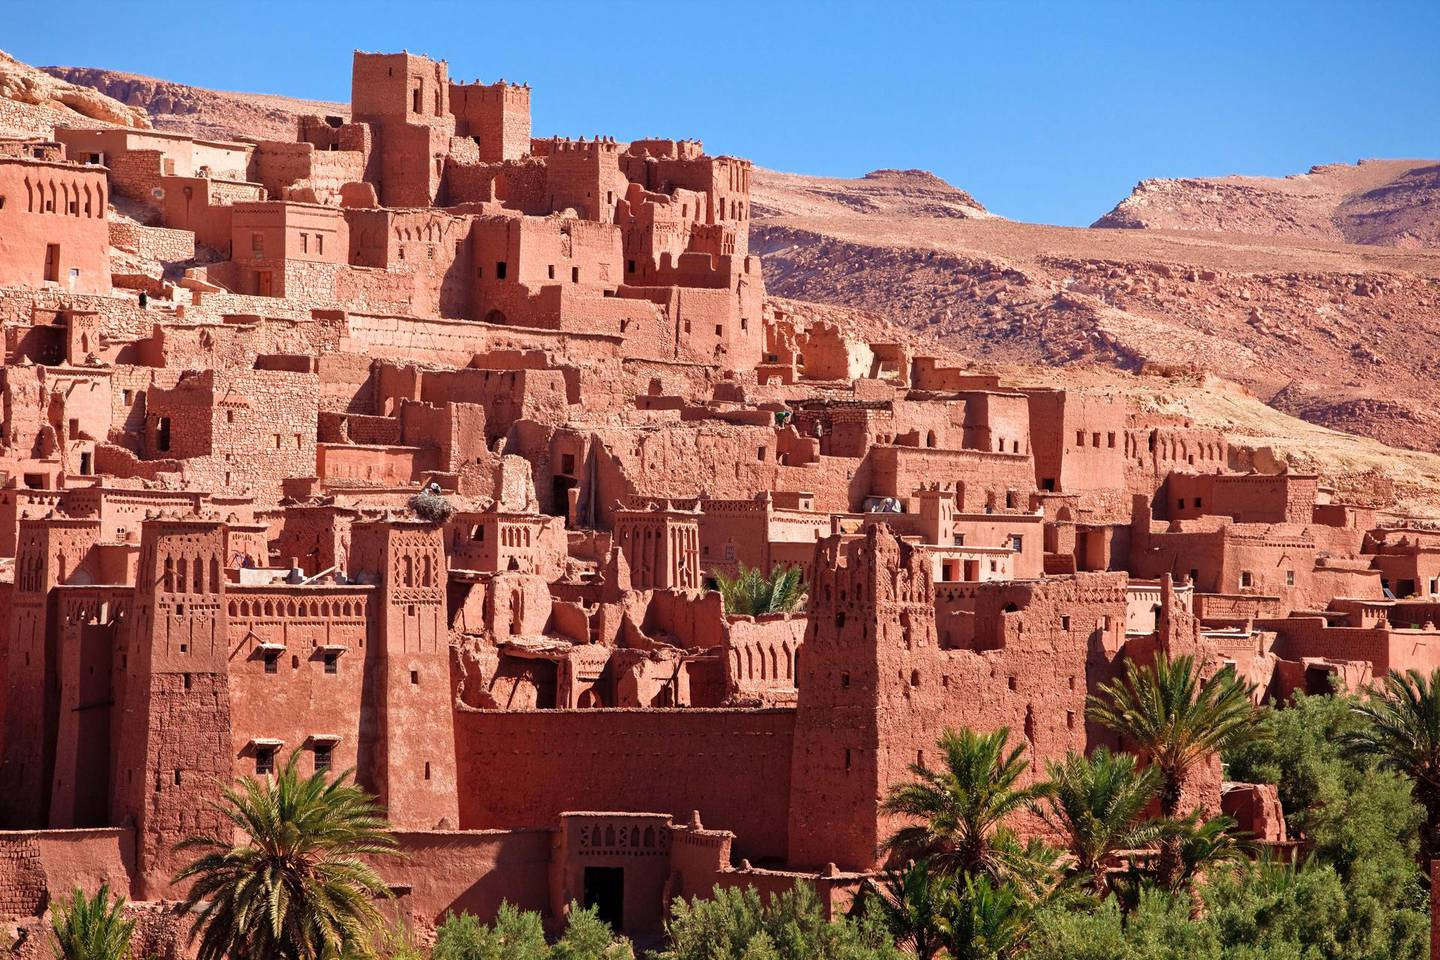 Aït Benhaddou is a 'fortified city', or ksar, along the former caravan route between the Sahara and Marrakech in present-day Morocco. Getty Images